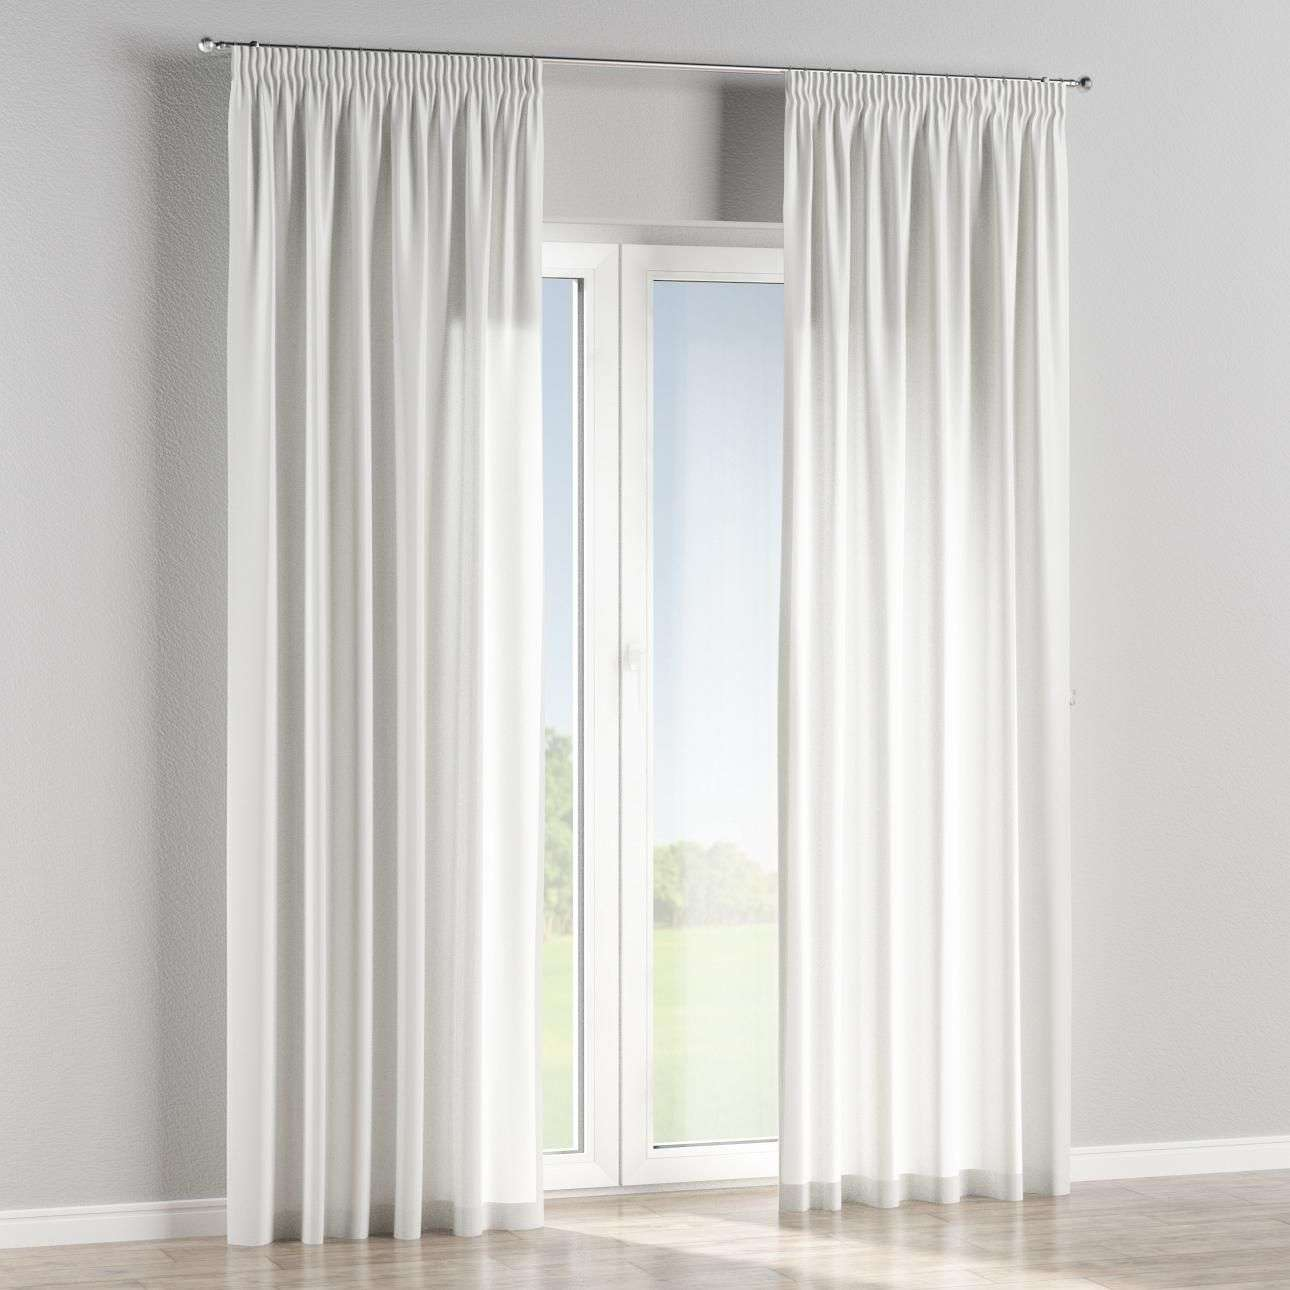 Pencil pleat lined curtains in collection Freestyle, fabric: 137-63